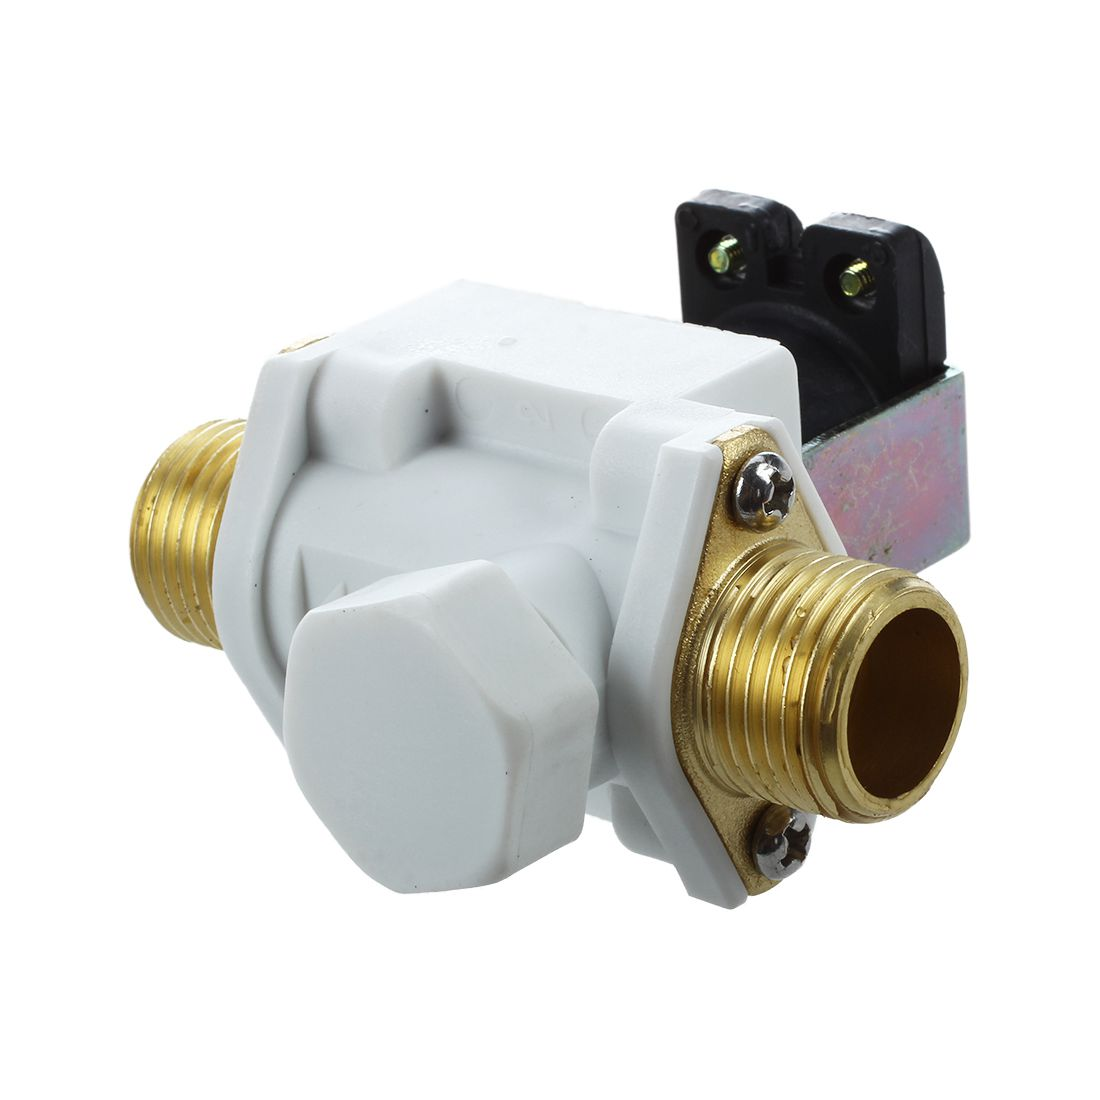 1pc DC 12V New Electric Solenoid Valve Magnetic N/C Water Air Inlet Flow Switch 1/2 Induction cooker parts luxury european brass bathroom accessories bath shower towel racks shelf towel bar soap dishes paper holder cloth hooks hardware page 3